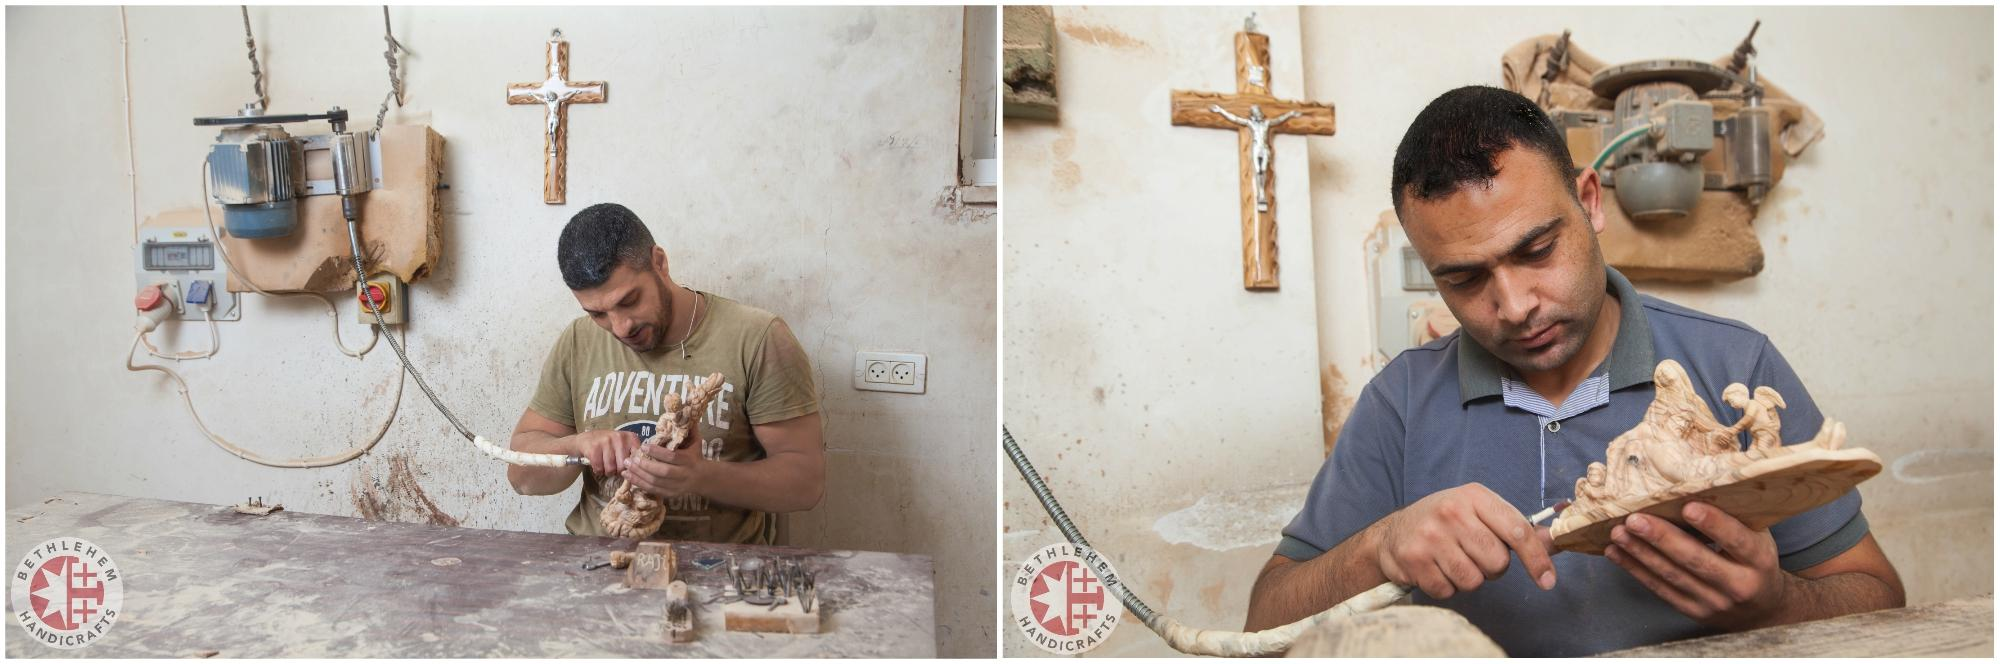 two christian workers carving olive wood